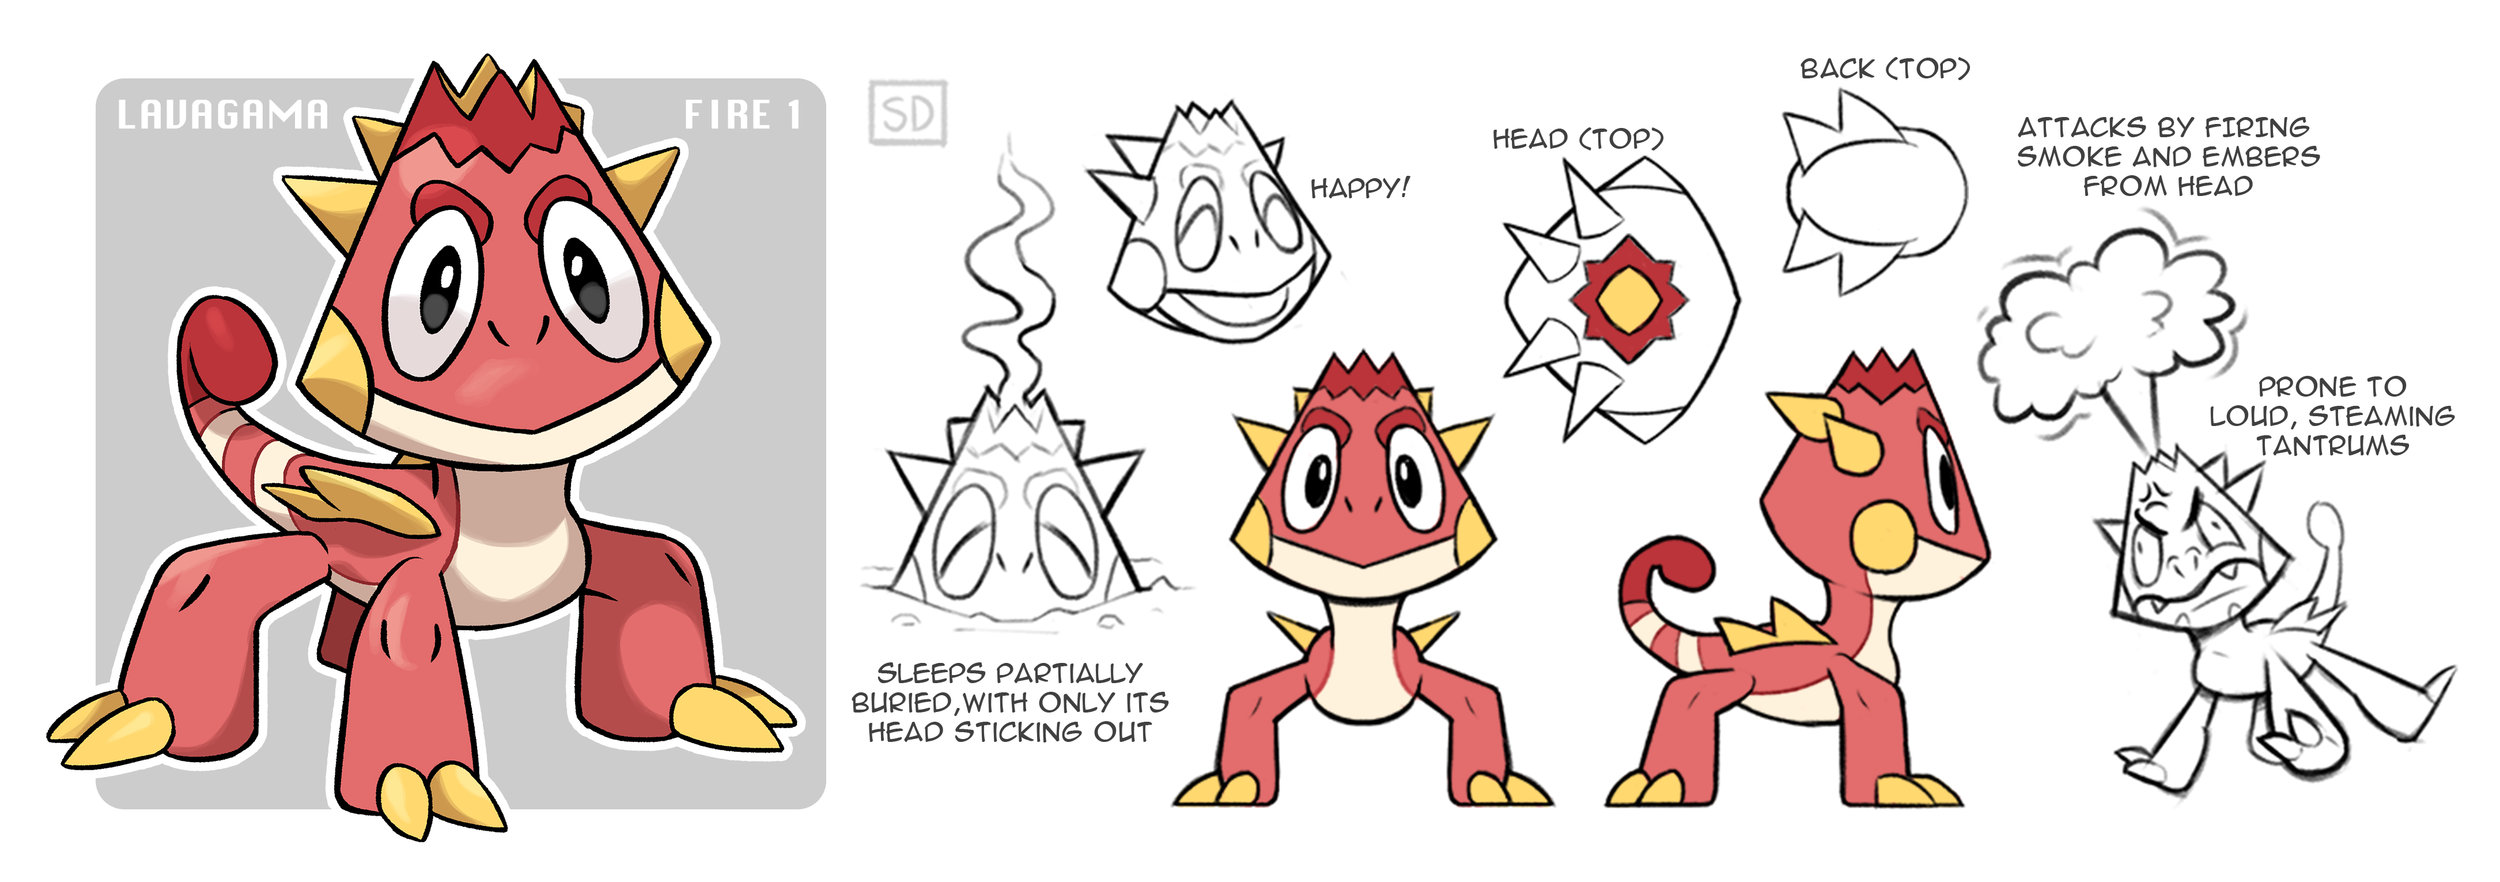 Originally an entry for Smogon's Create-A-Pokemon Project. The pre-evolution for the Fire-type starter, Smokomodo.